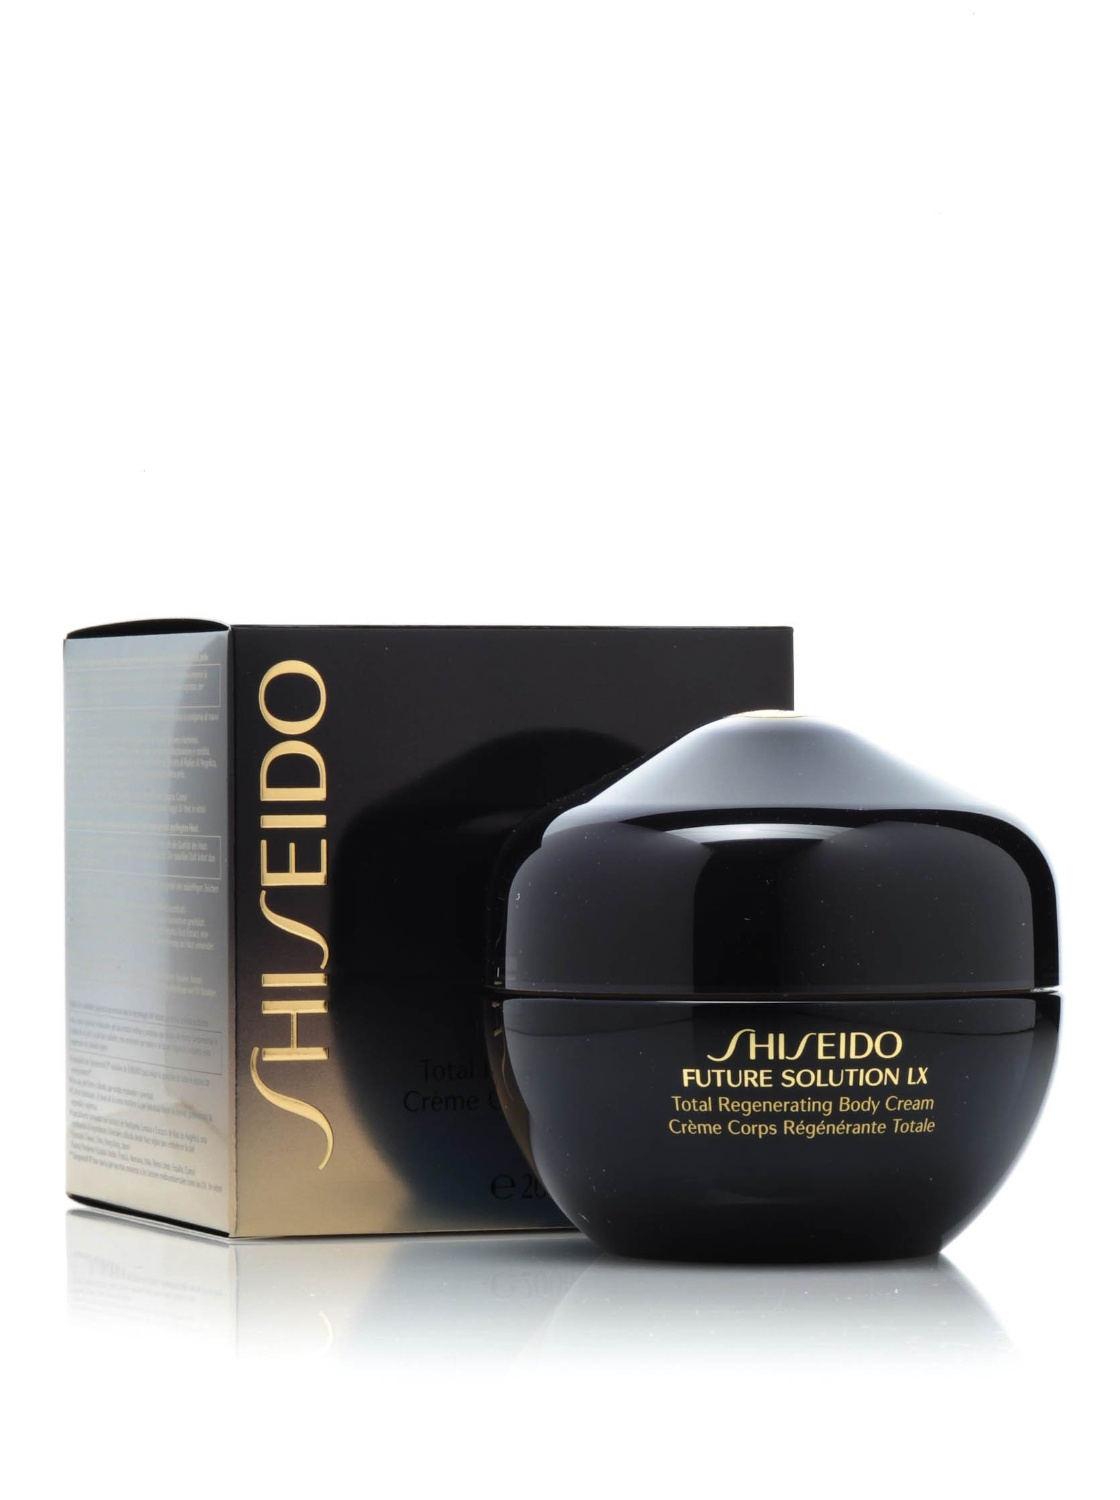 SHISEIDO FUTURE SOLUTION LX TOTAL REGENERATING BODY CREAM 200 ML